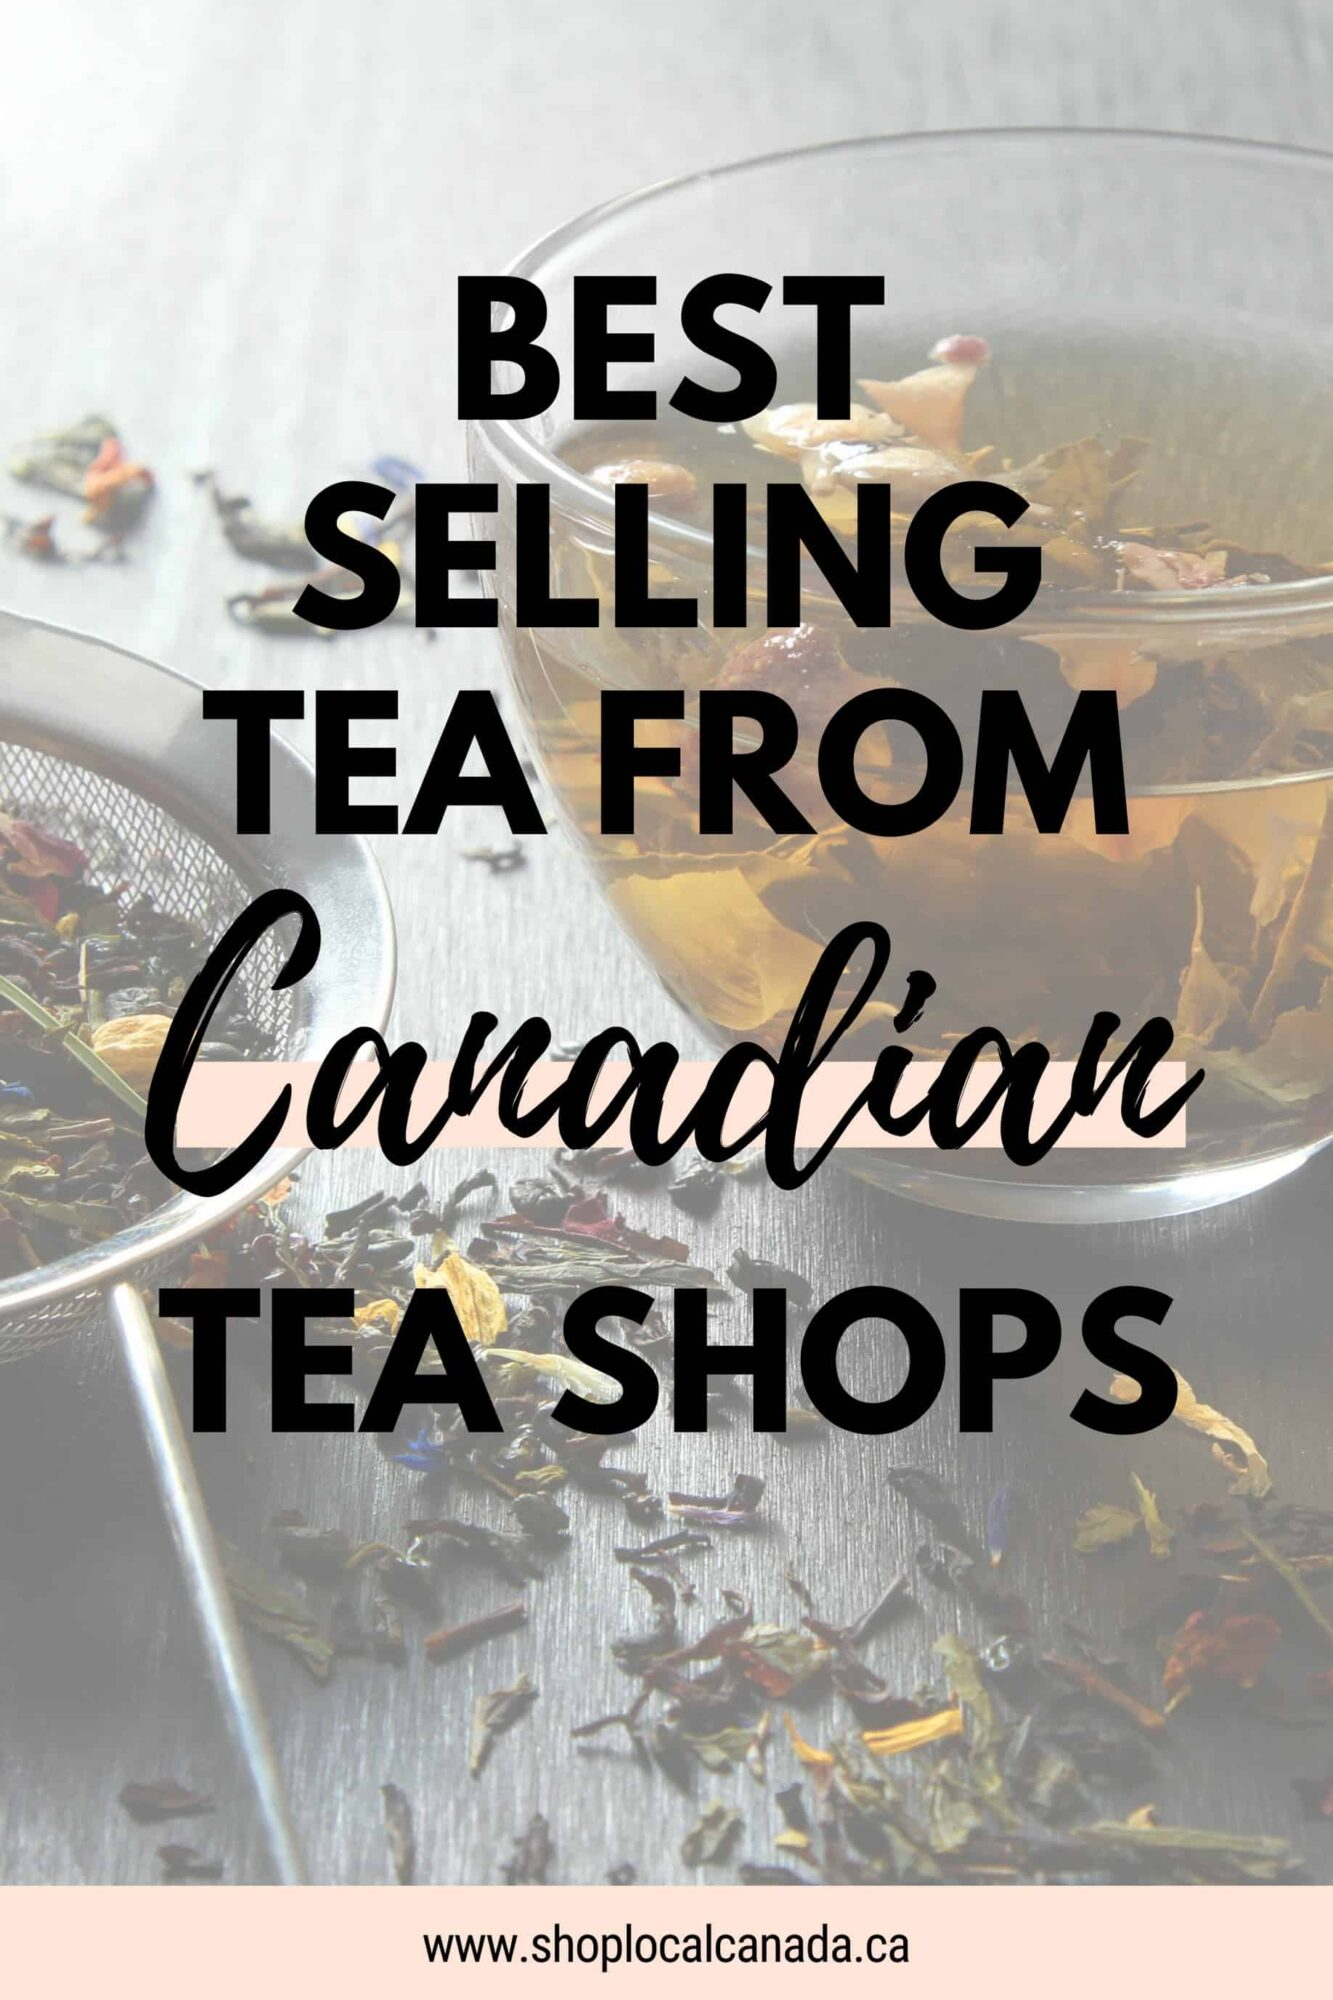 Best Selling Tea From Canadian Tea Shops